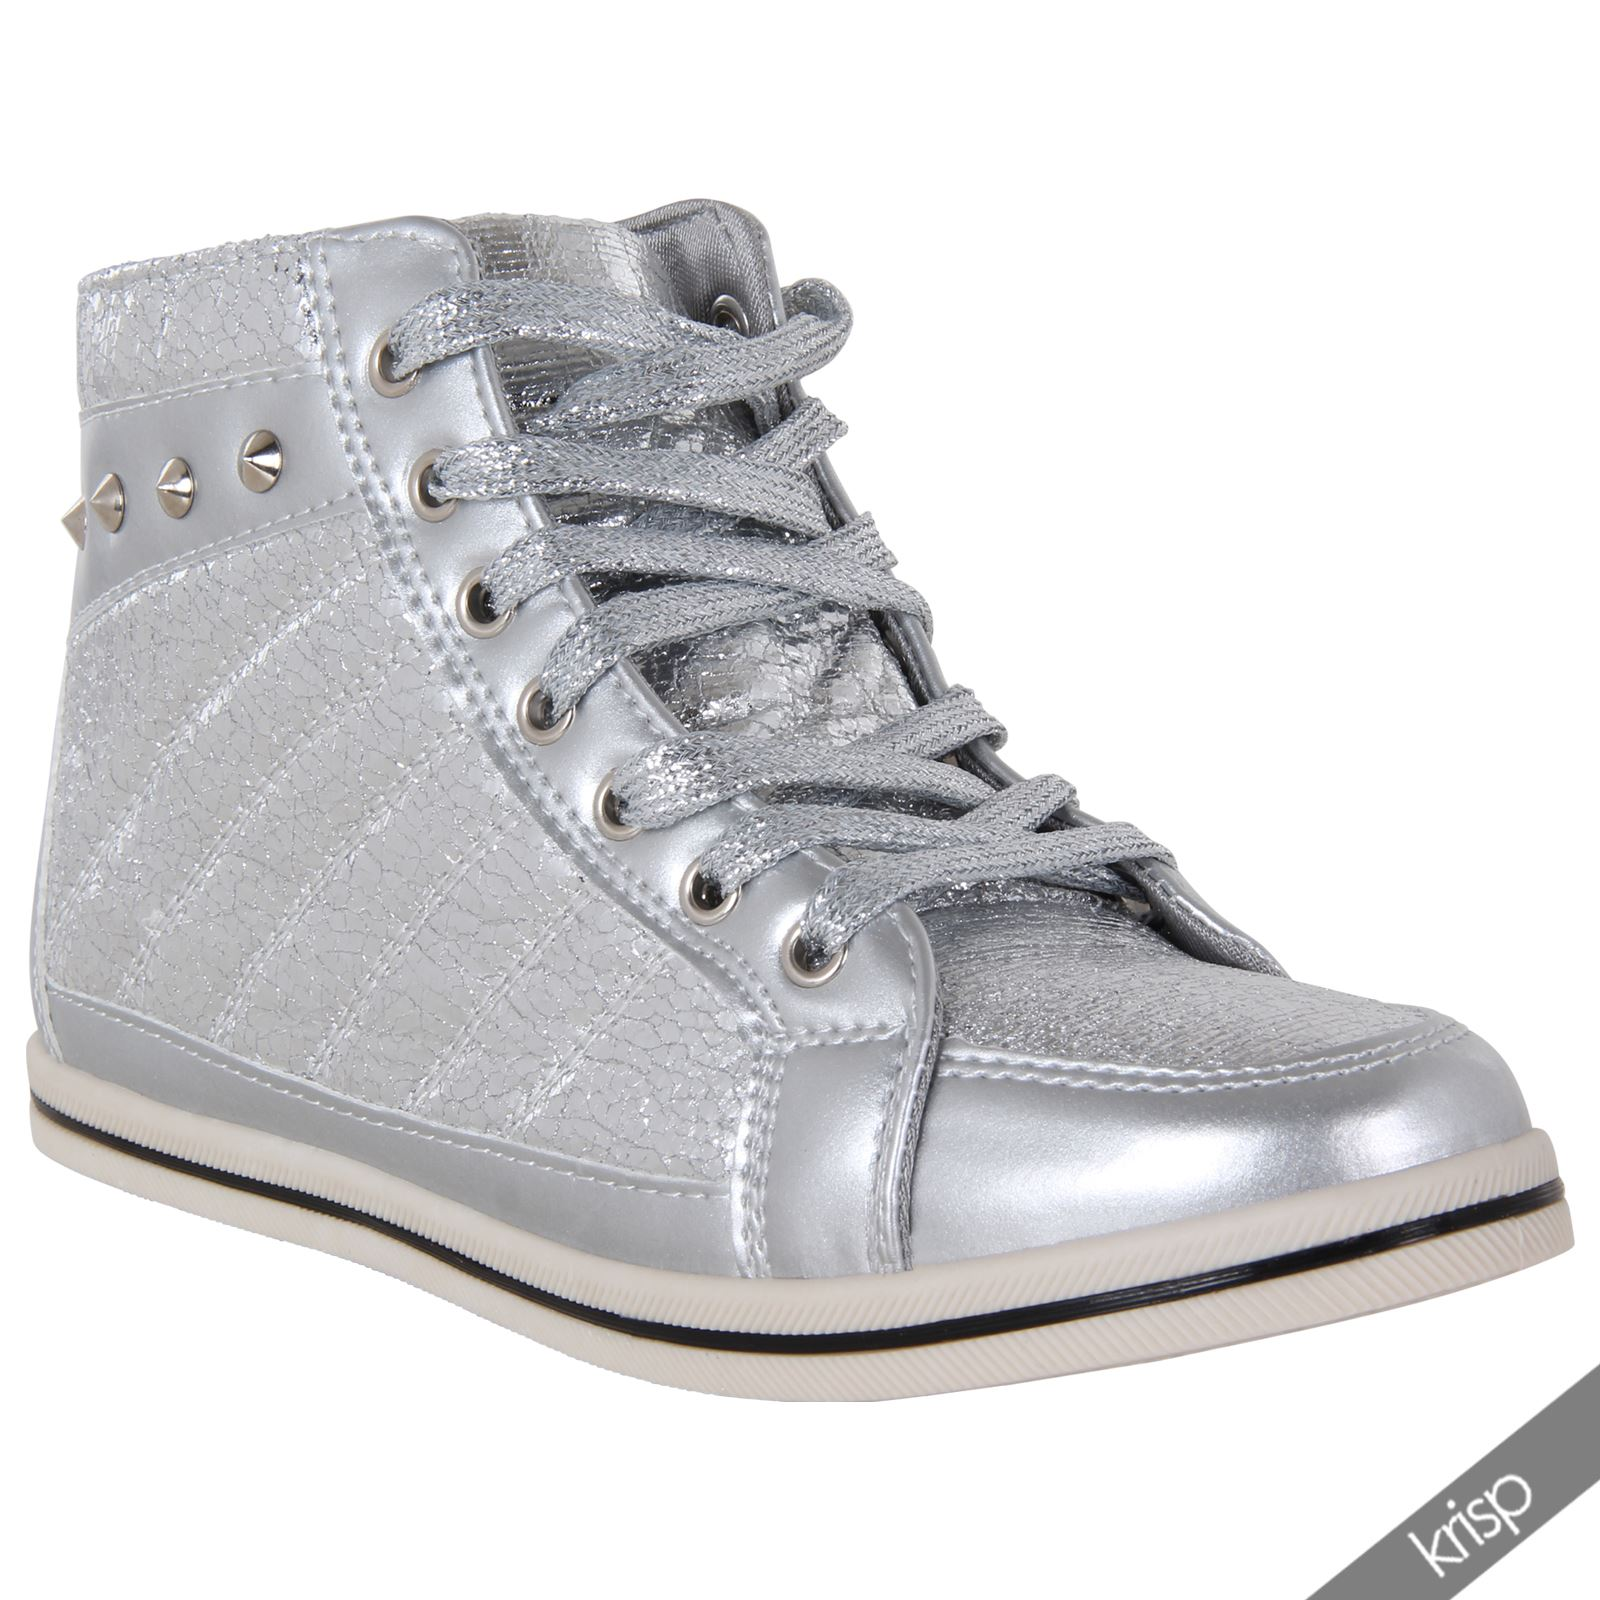 Womens Lace Up Studded Shiny Metallic Flat Ankle Trainers ...